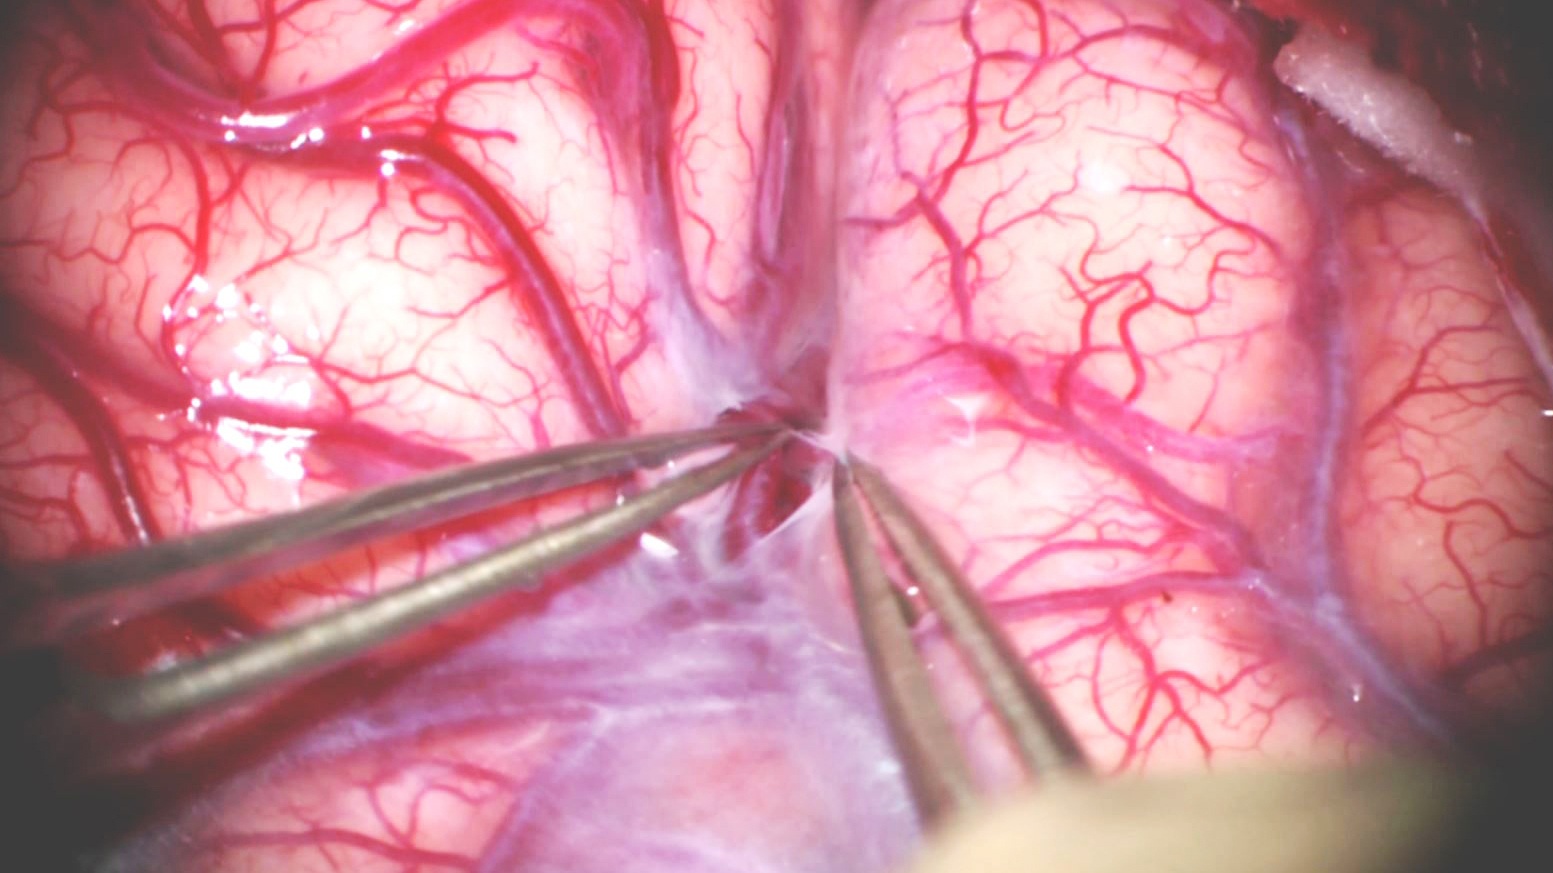 Figure 1: Sylvian fissure split unveils the world of subarachnoid dissection that defines aneurysm surgery.